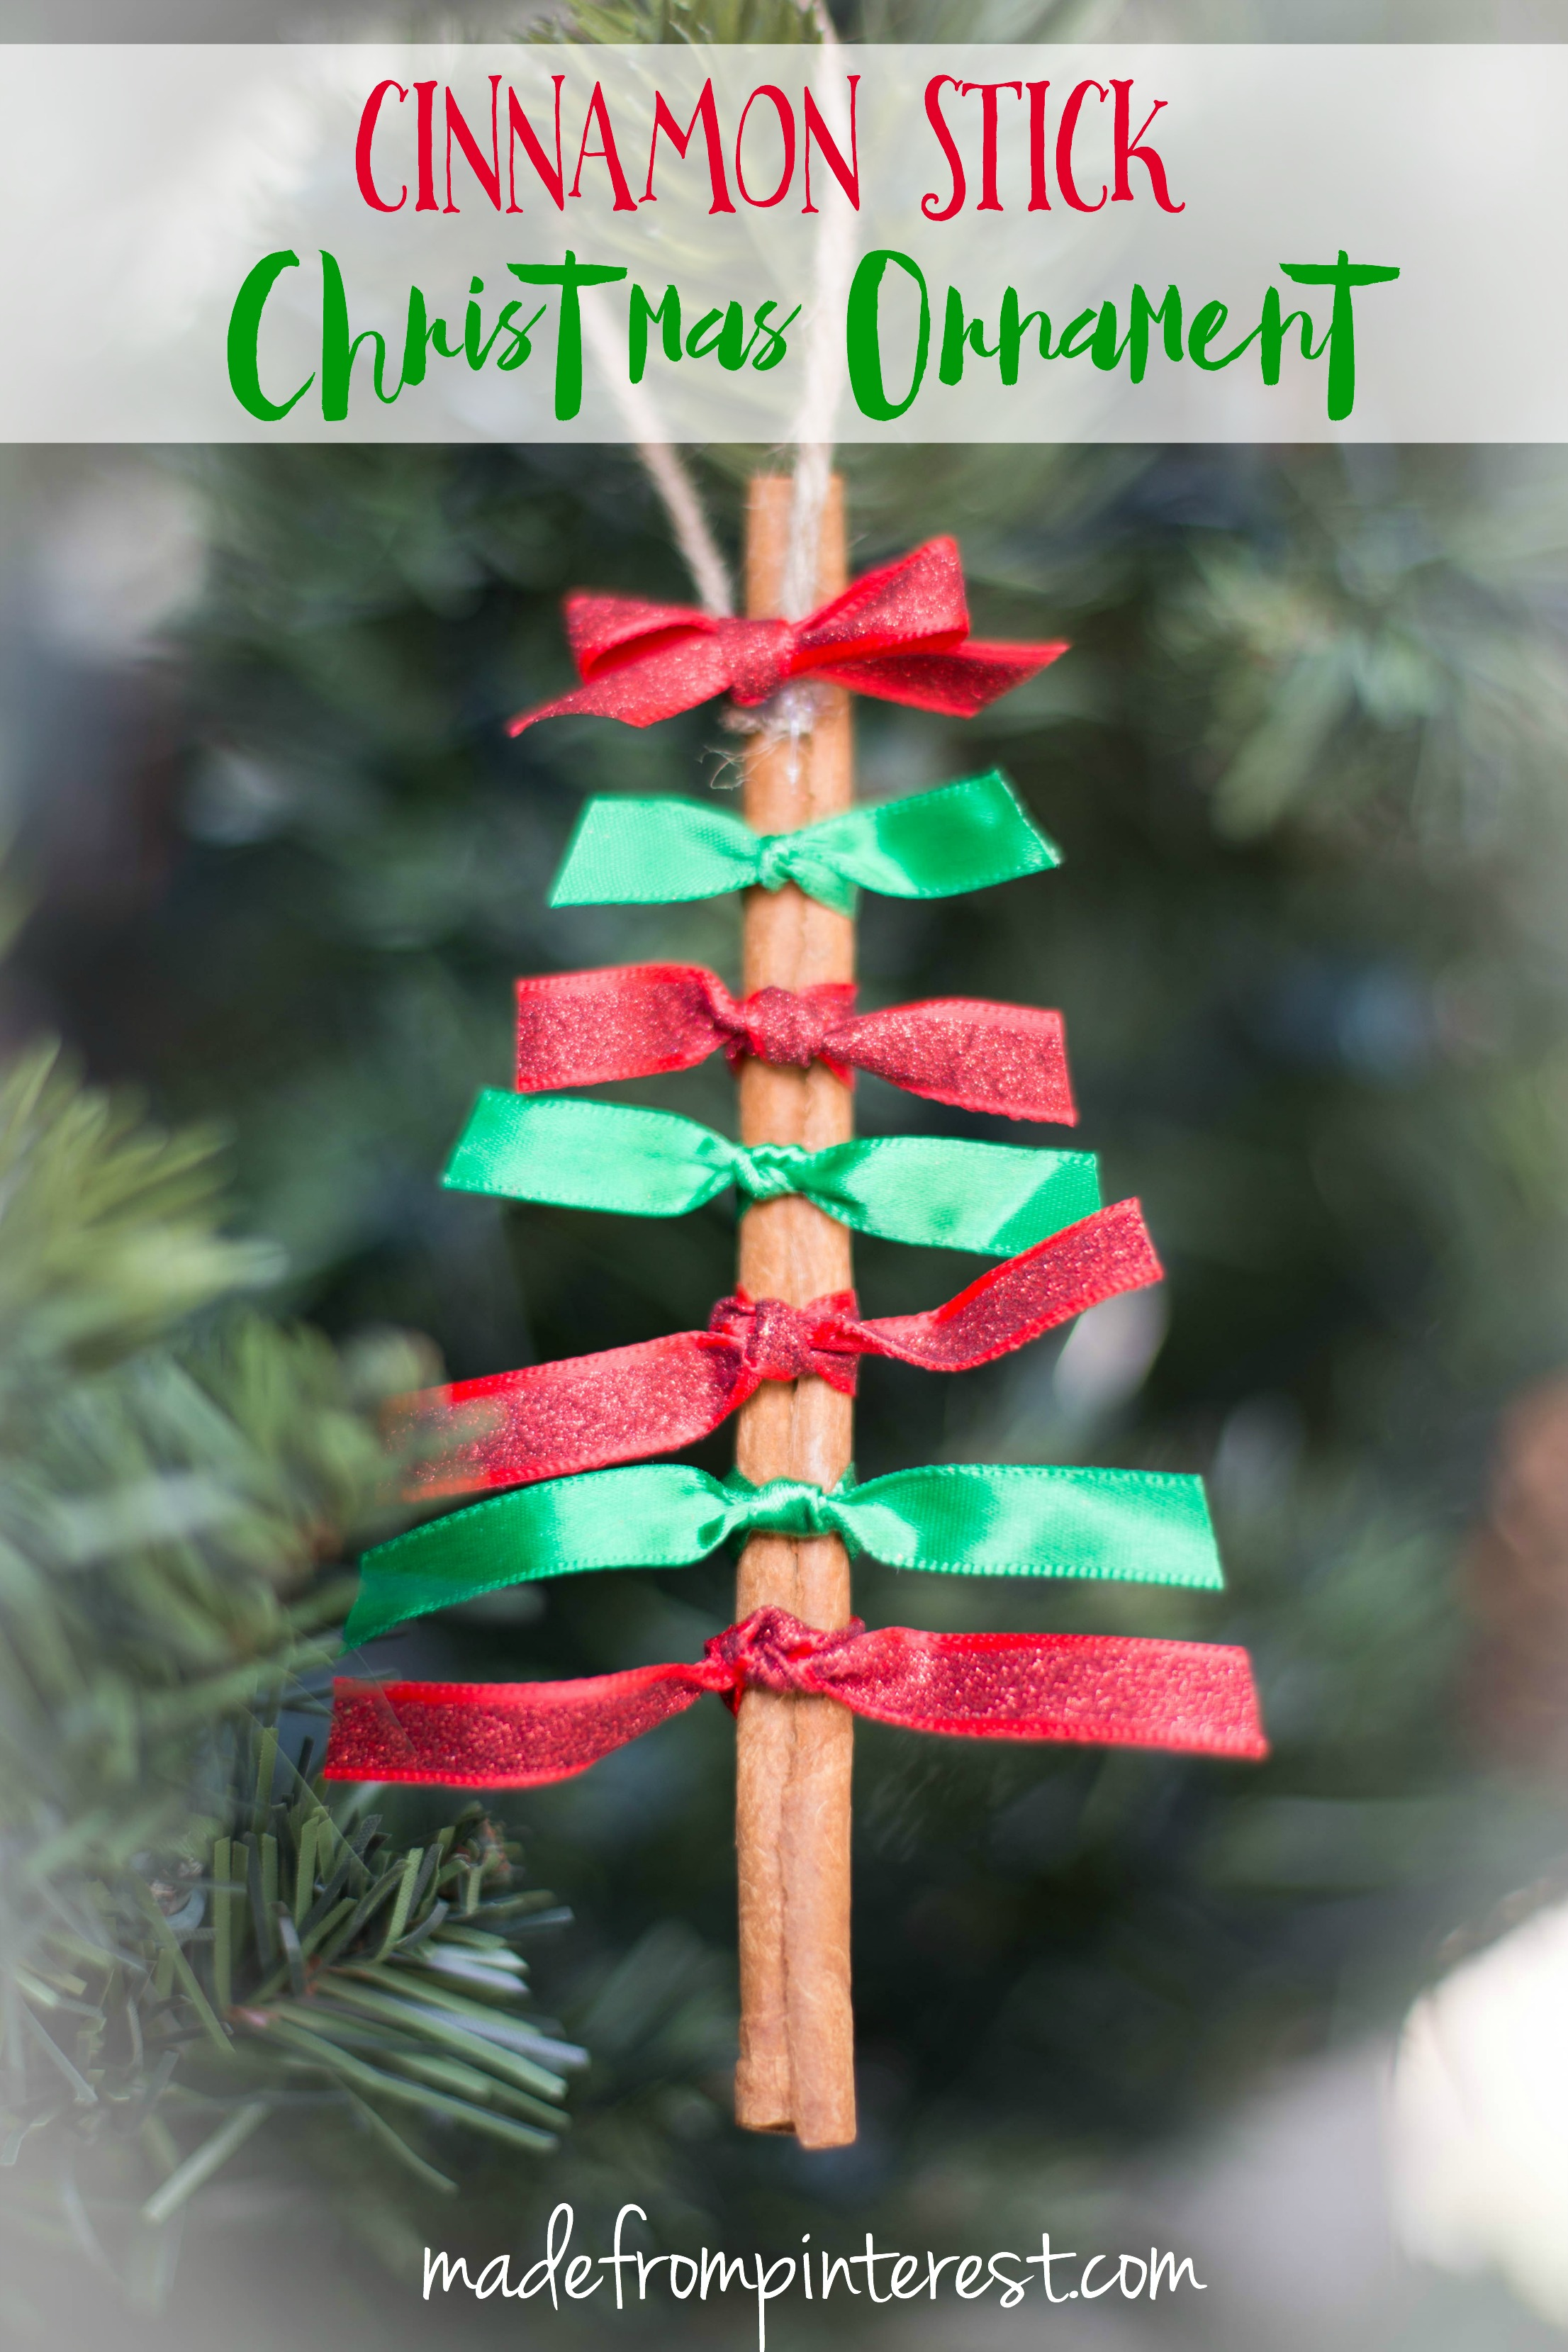 quick and easy to make these cinnamon stick christmas ornaments will add a darling look